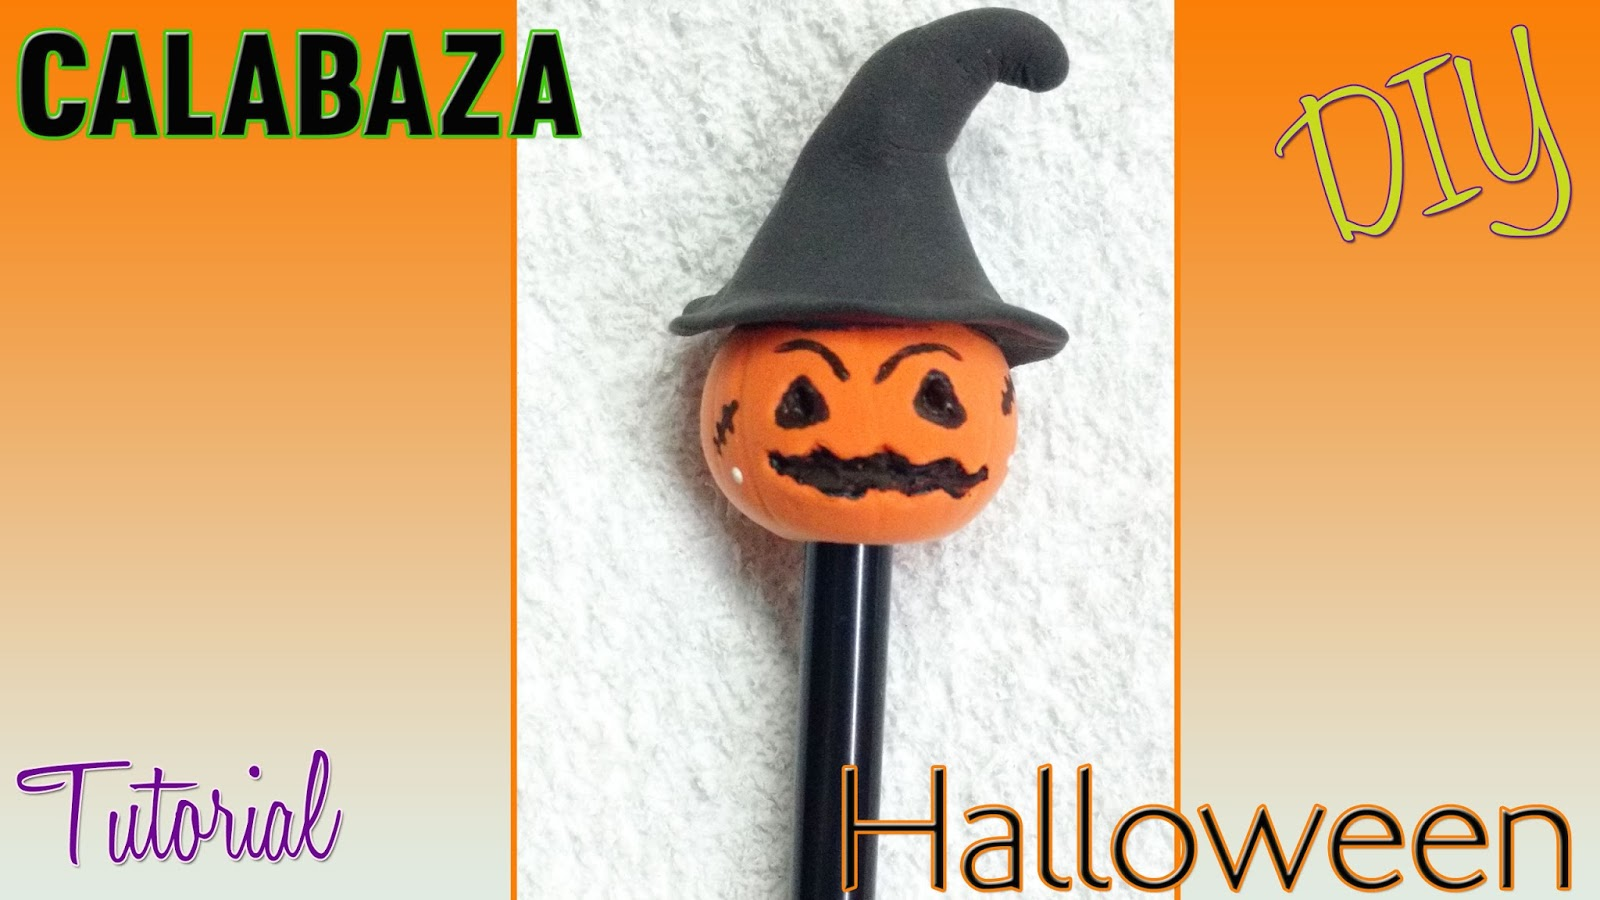 Calabaza Decorada Tutorial Pluma Decorada Con Calabaza Halloween En